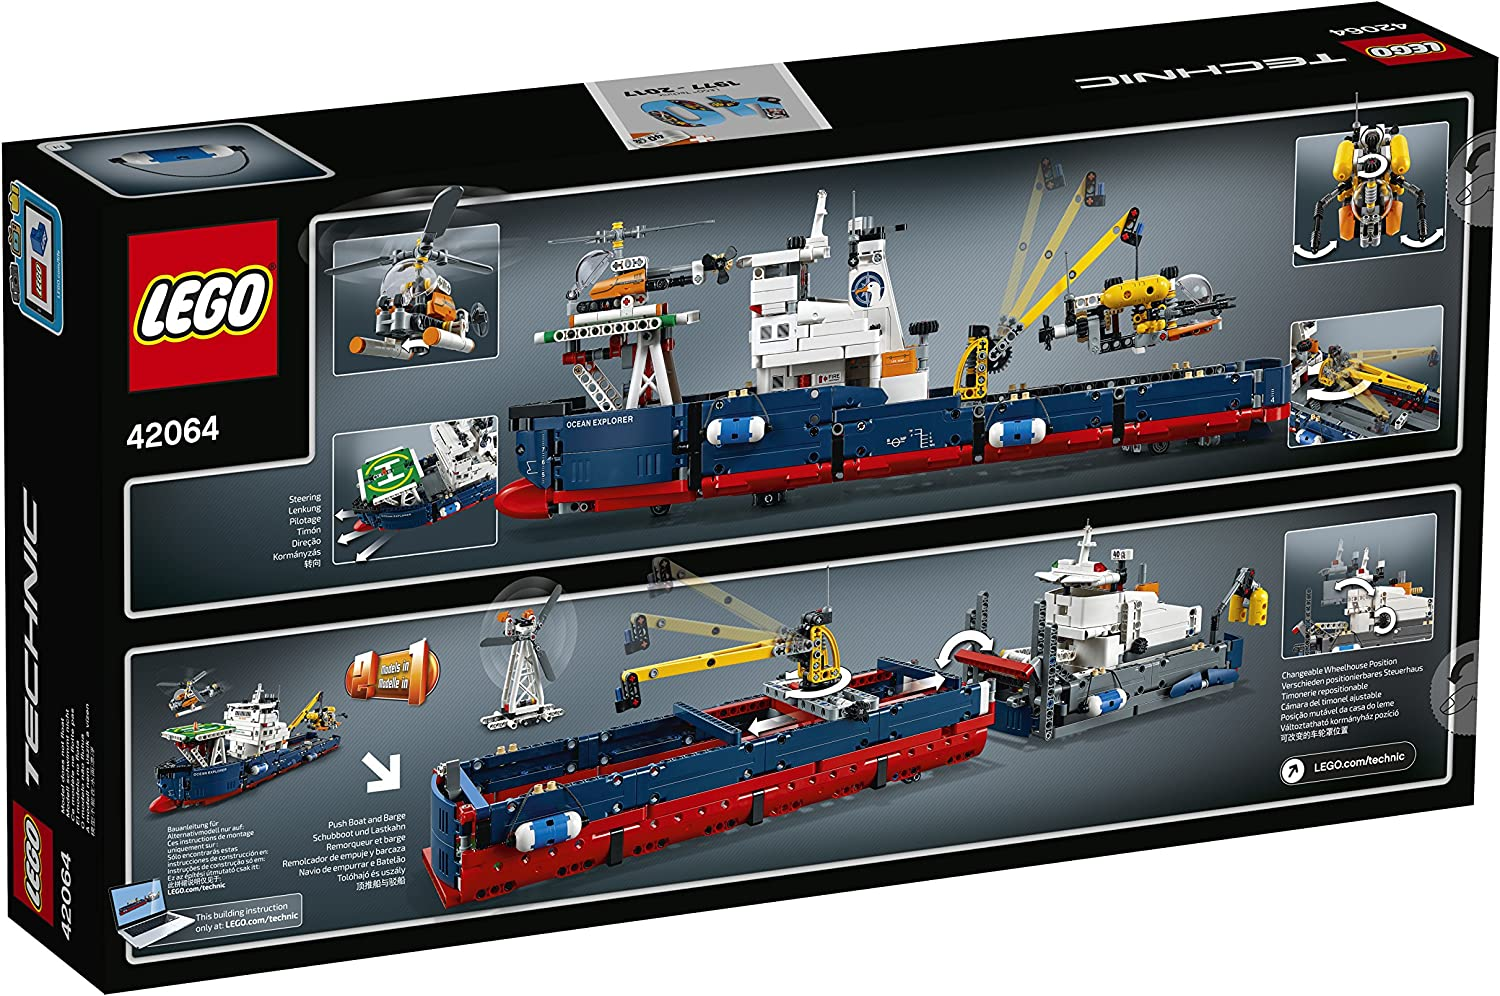 LEGO Technic Ocean Explorer Set